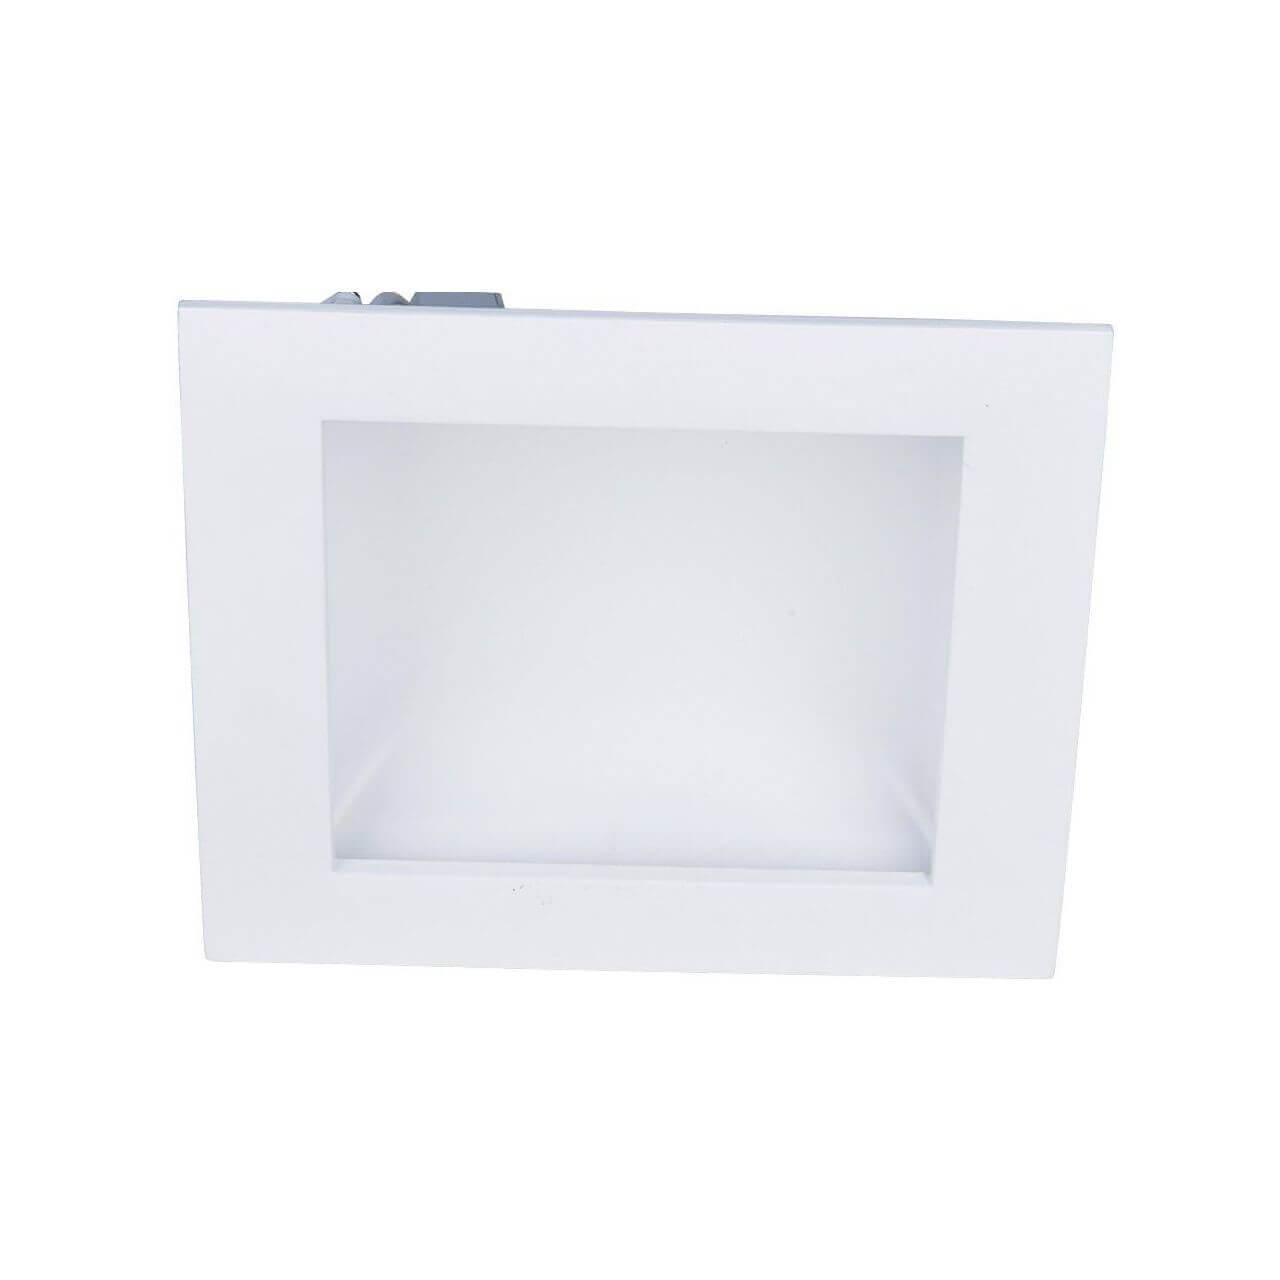 Светильник Arte Lamp A7412PL-1WH Riflessione